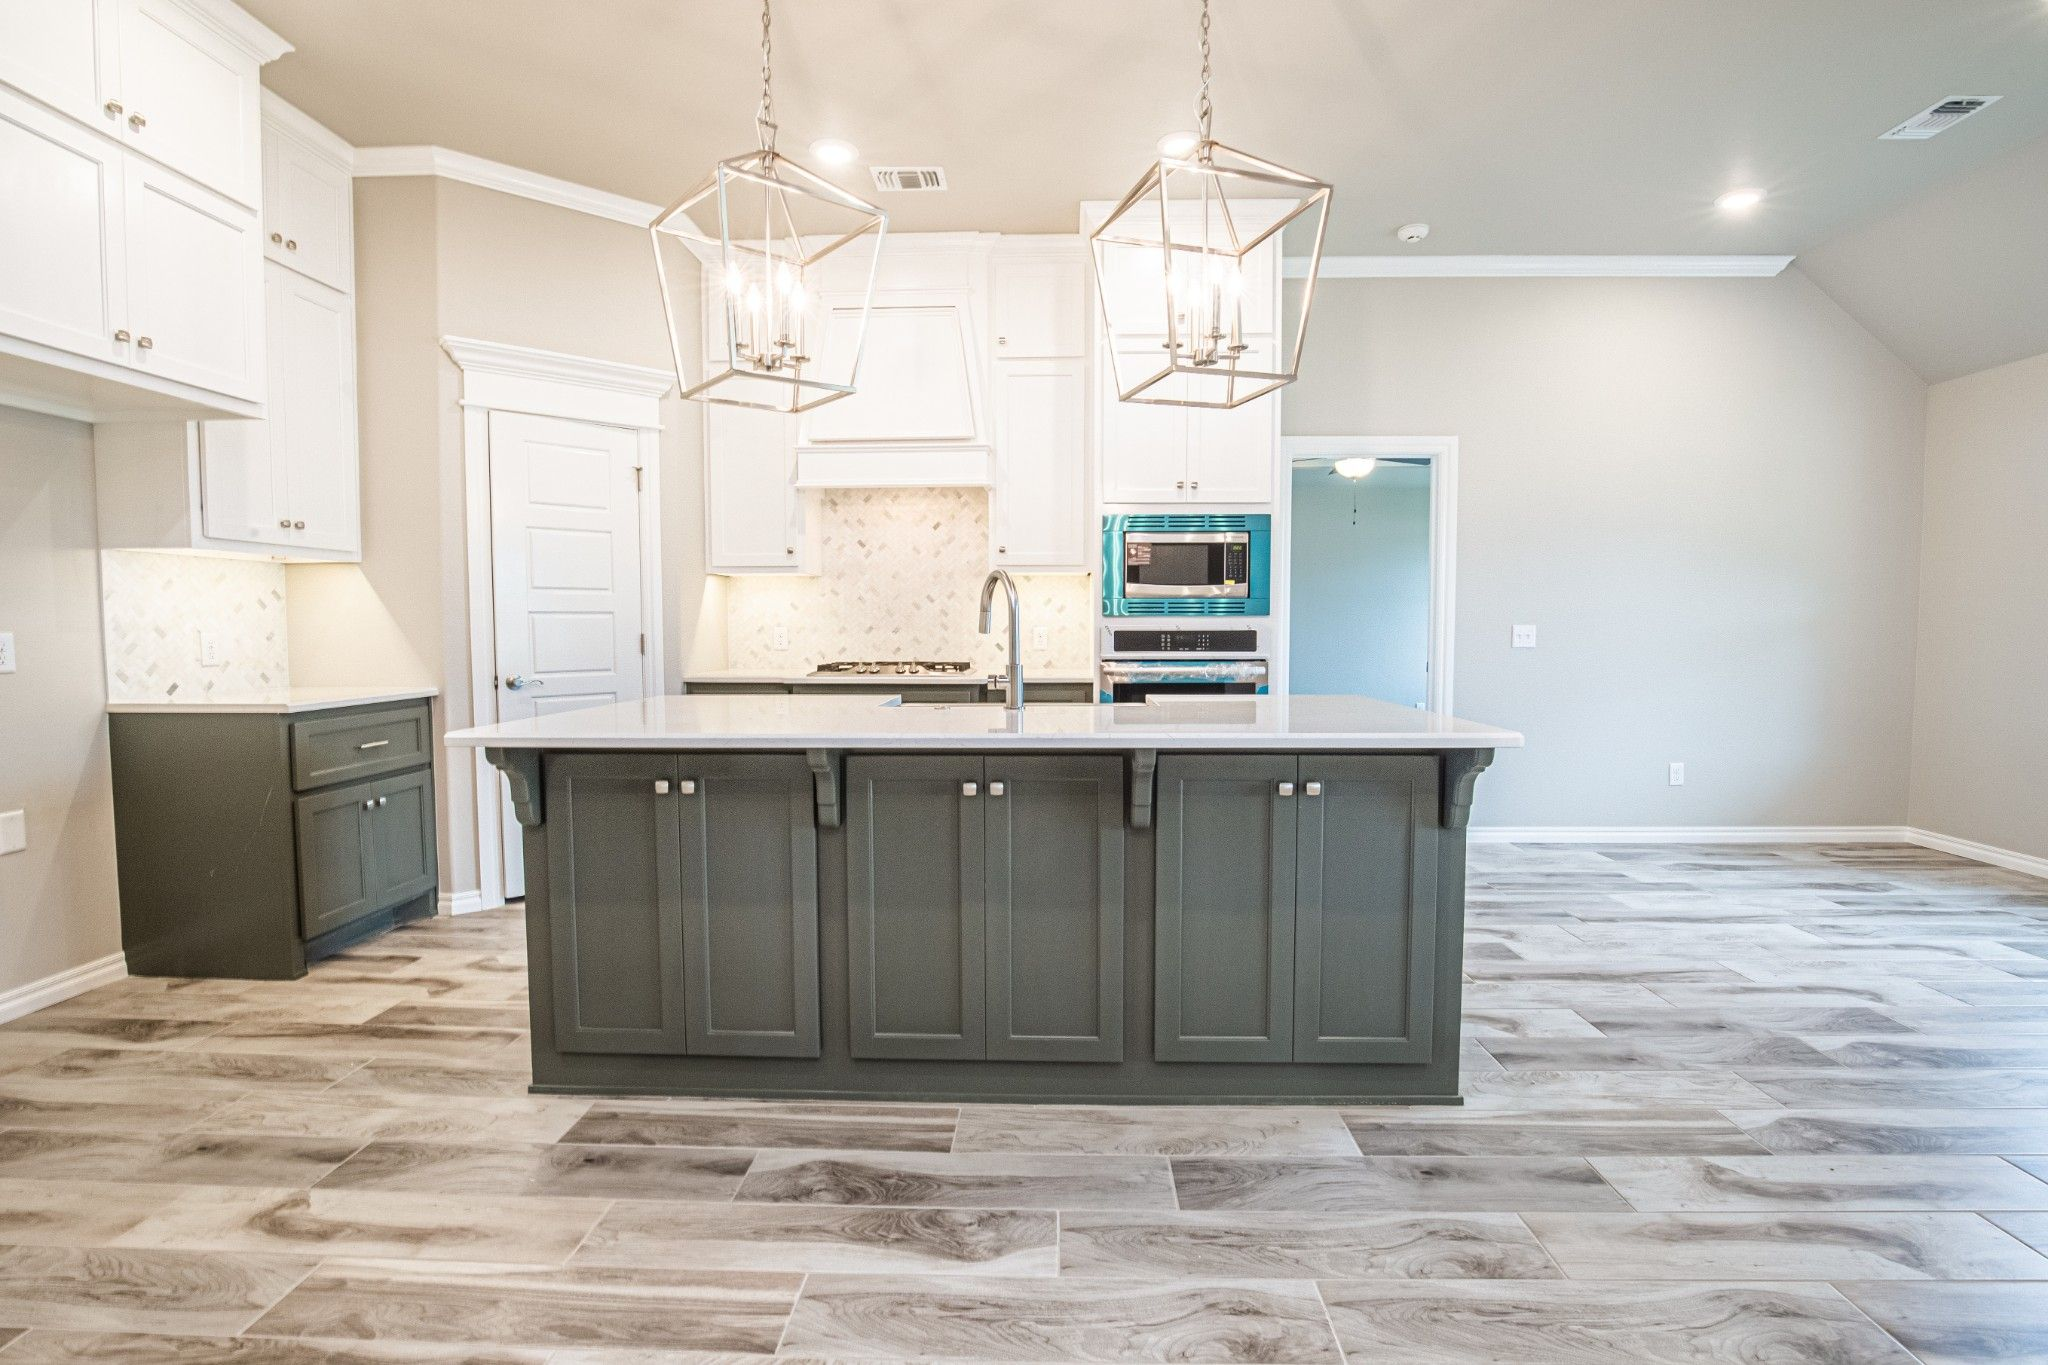 Kitchen featured in the Sage Bonus Room 2 By Homes By Taber in Oklahoma City, OK